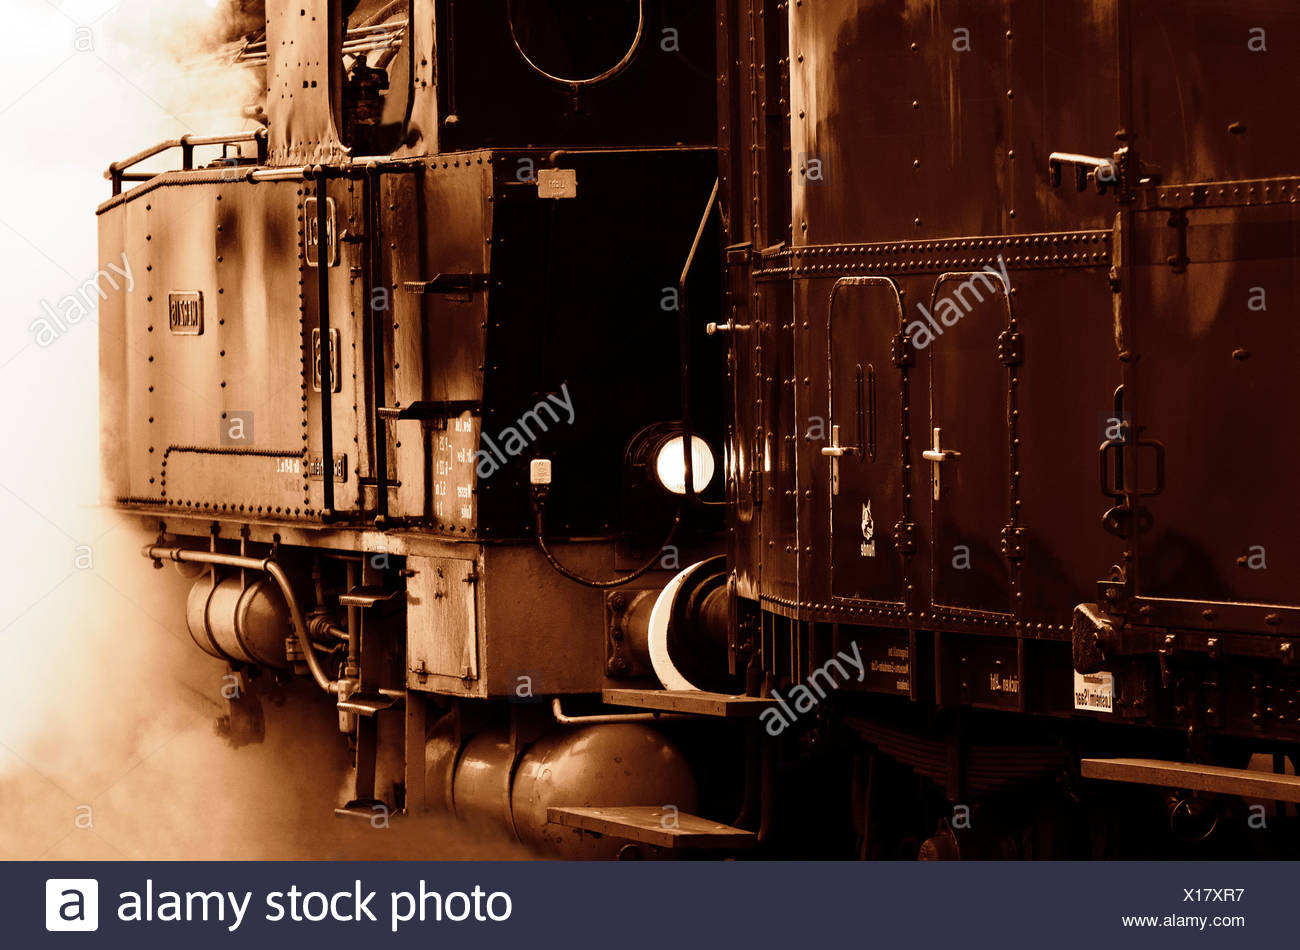 a steam locomotive - Stock Image